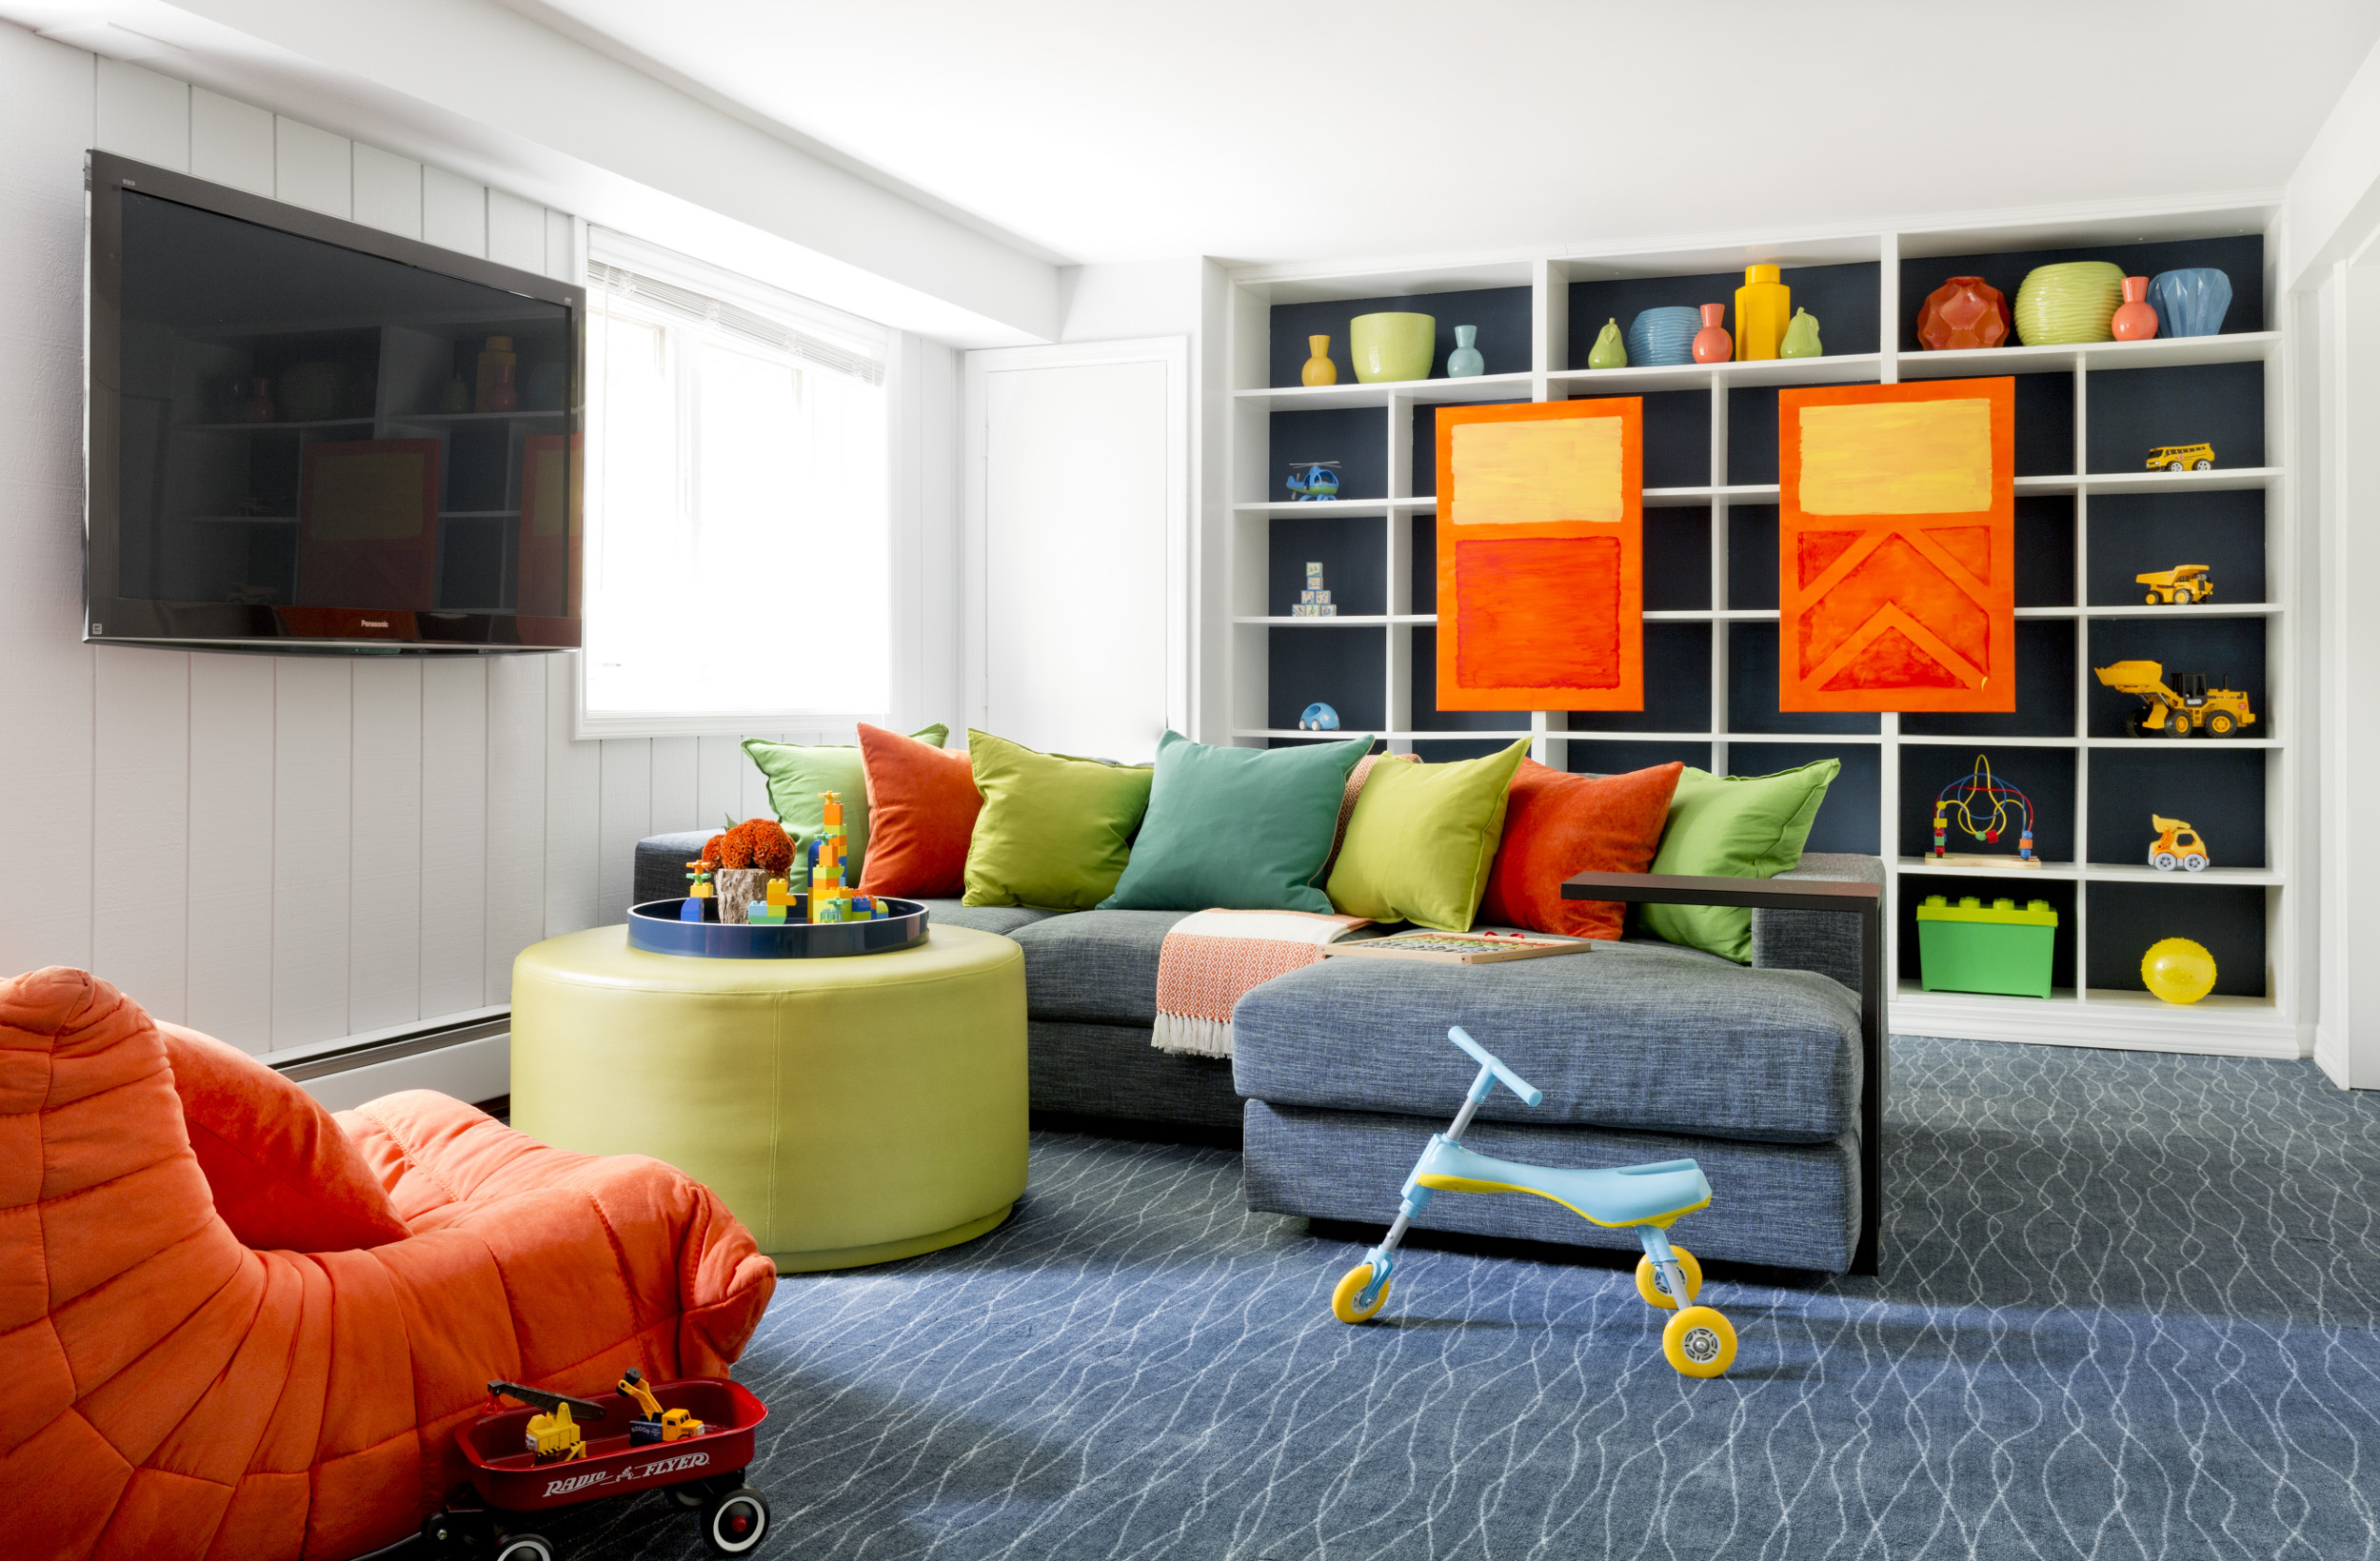 Kids Playroom Interior Design Connnecticut Caroline Kopp.jpg